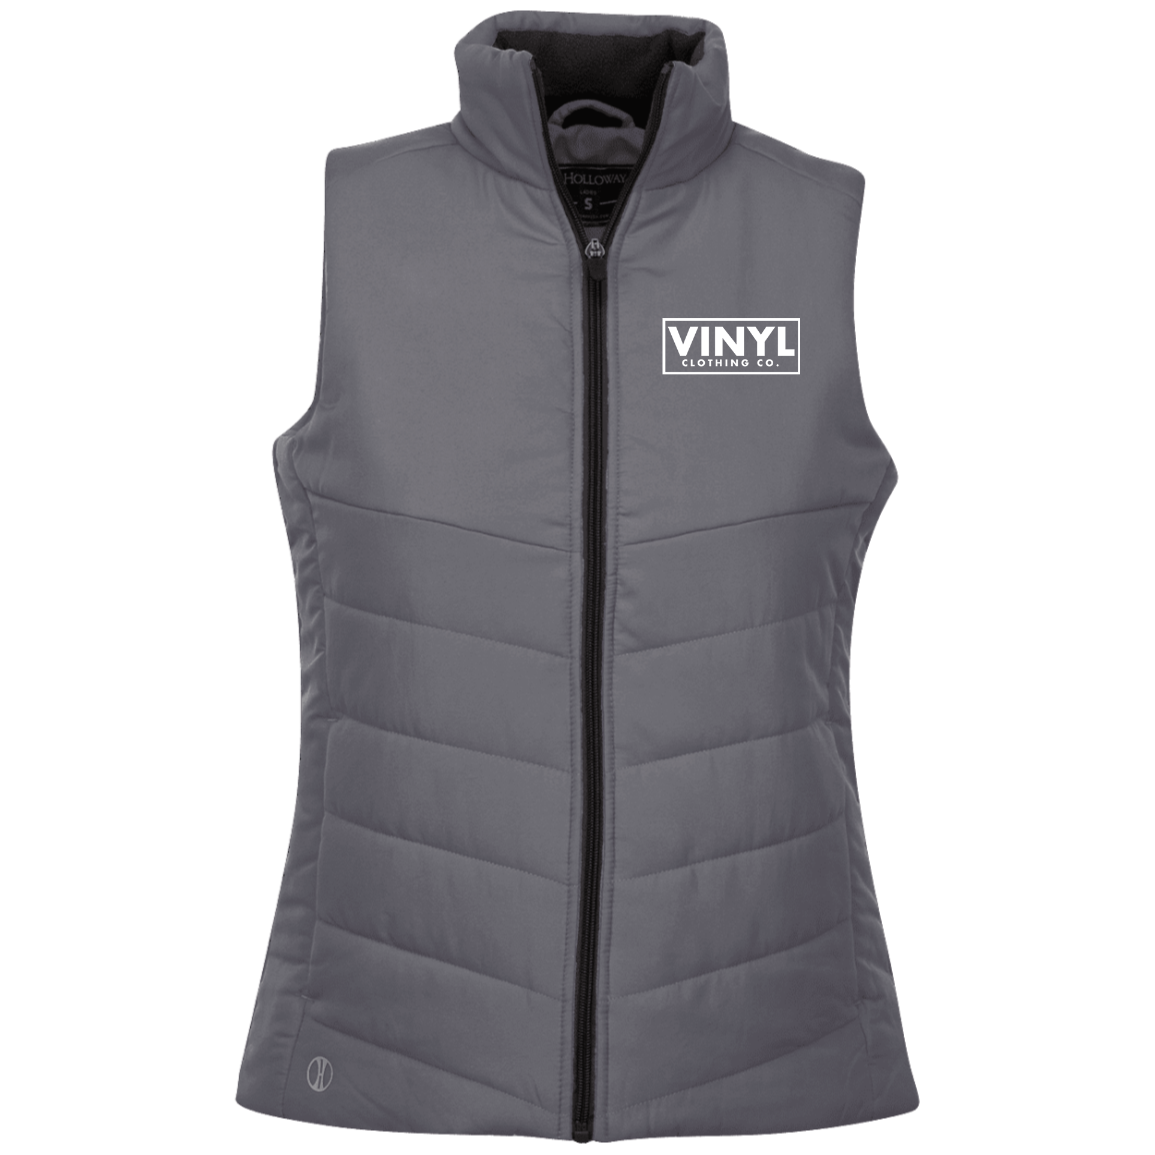 Vinyl Clothing Co. Holloway Ladies' Quilted Vest